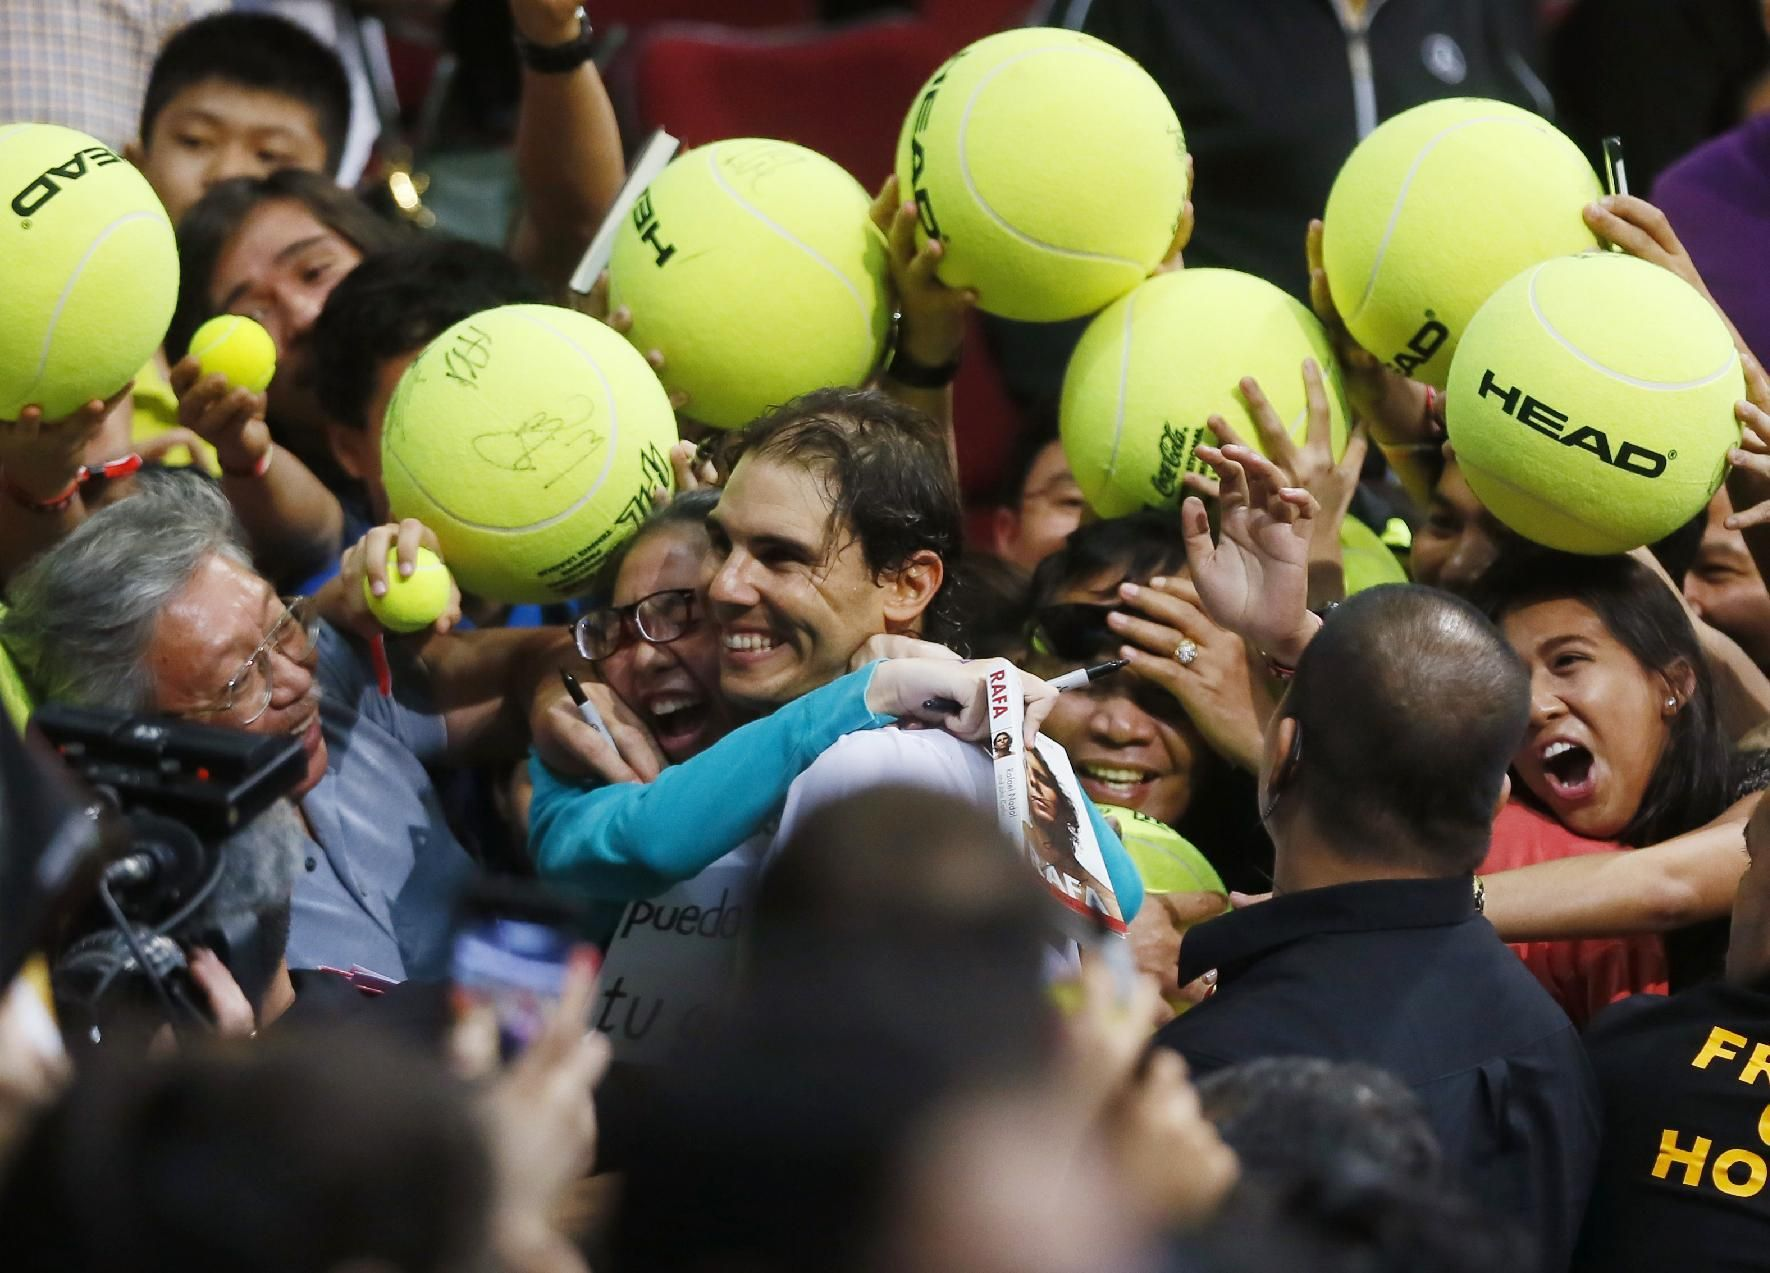 Rafael Nadal, the marquee signing and captain of the Indian Aces, made his IPTL debut today, walking onto court to thunderous applause and cheers from the Manila crowd. Our champ won both his sets,...